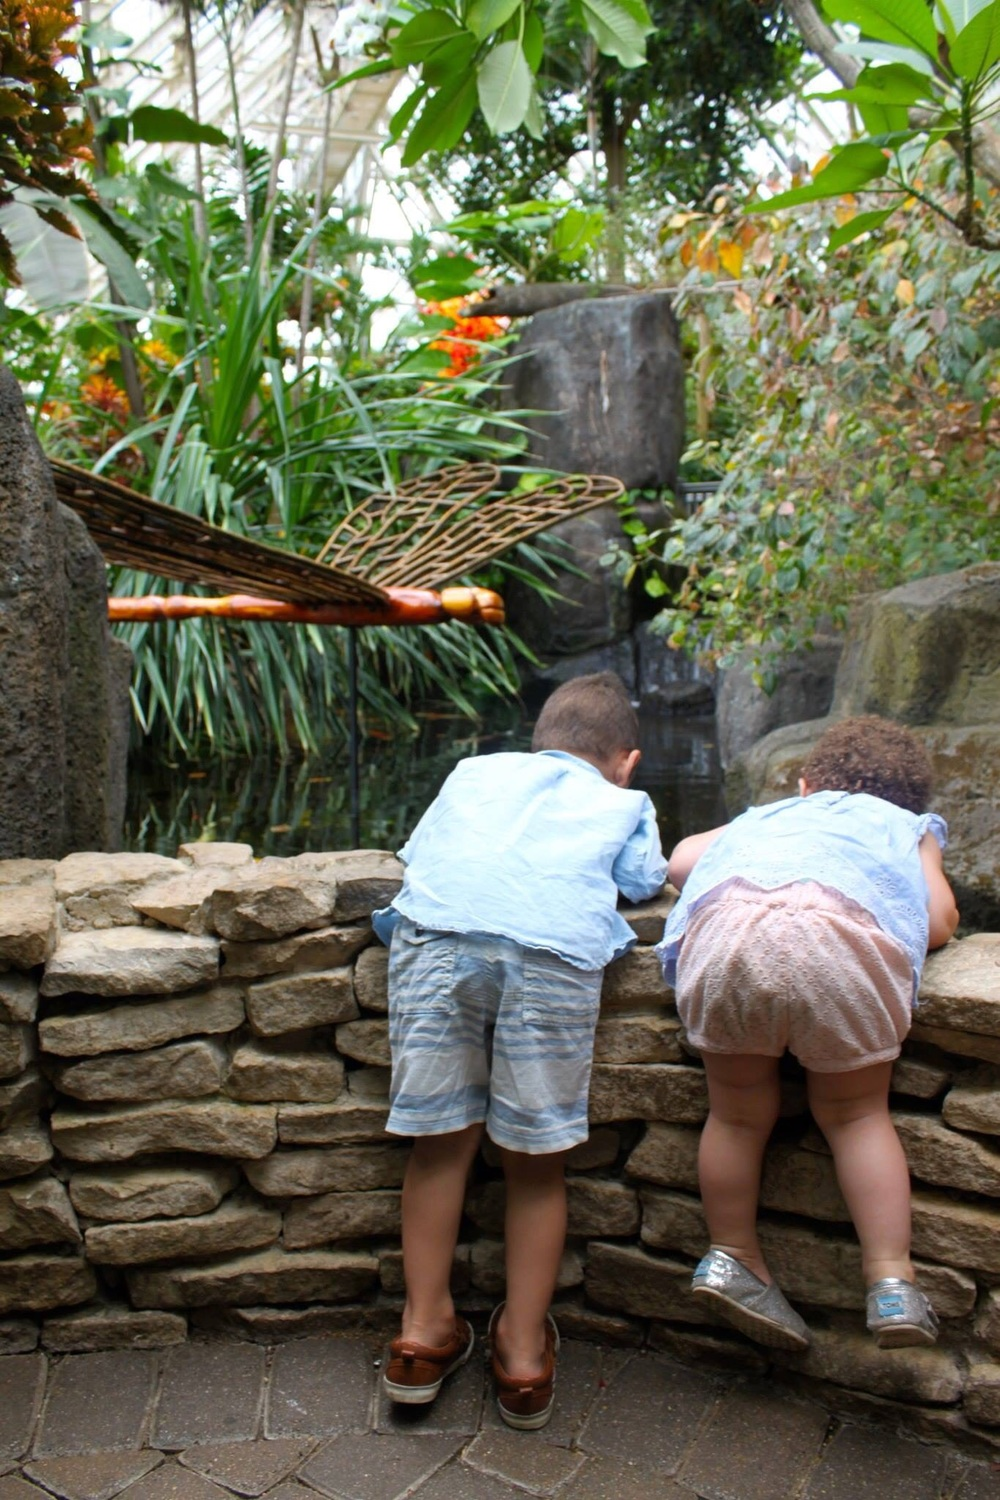 Spying on the fish in the koi pond.